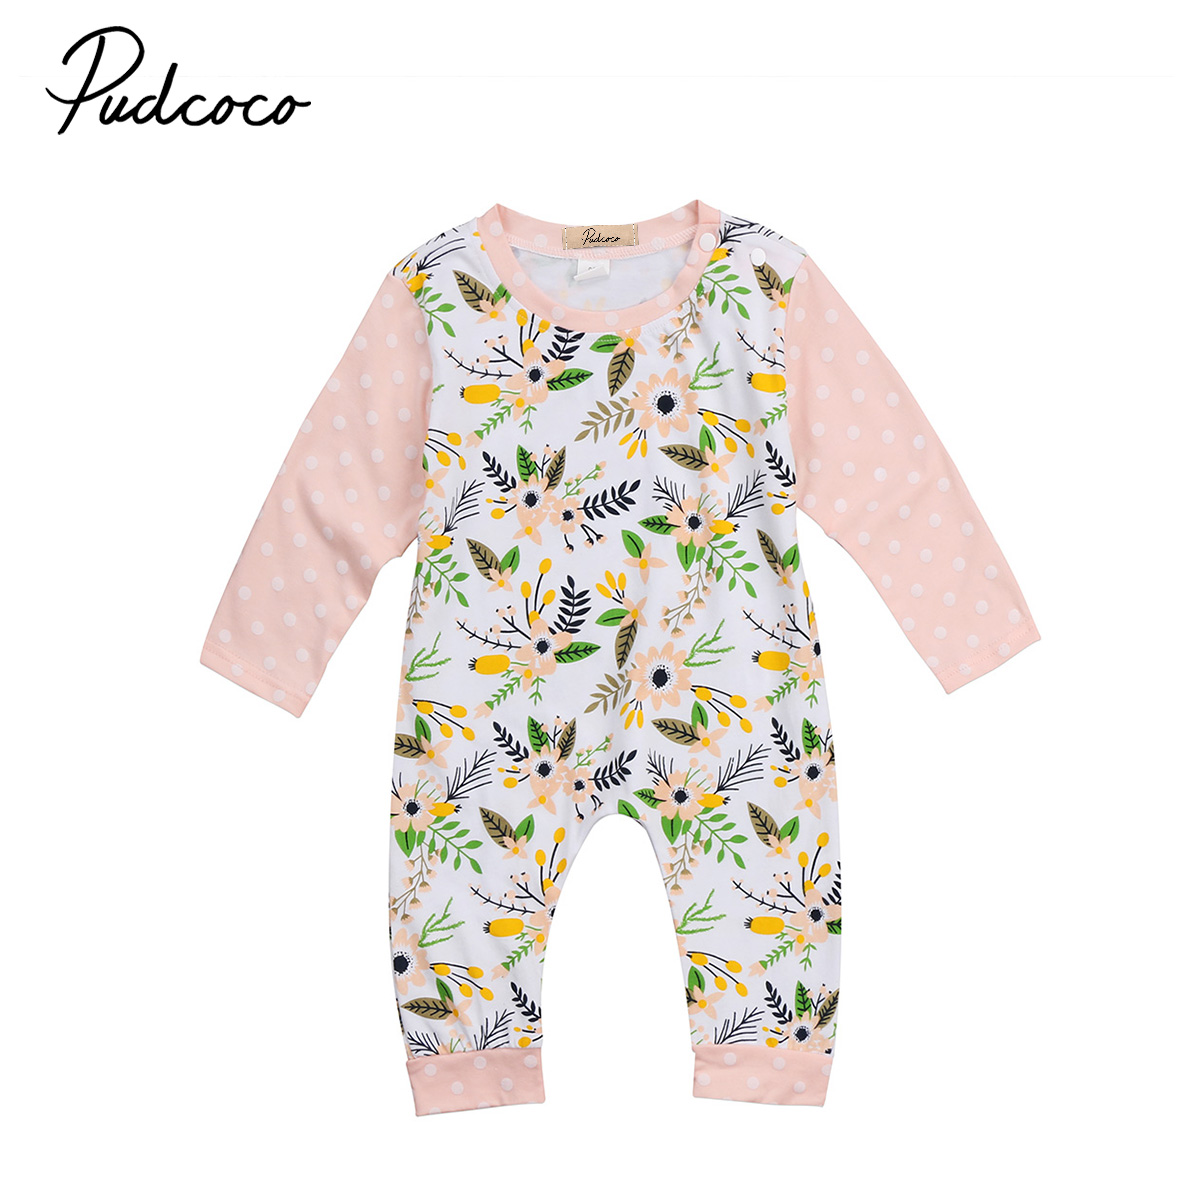 Flower baby Girl Clothing Lovely Toddler Infant Baby Girls Floral Long sleeve Romper Jumpsuit Clothes Outfit 0-24M